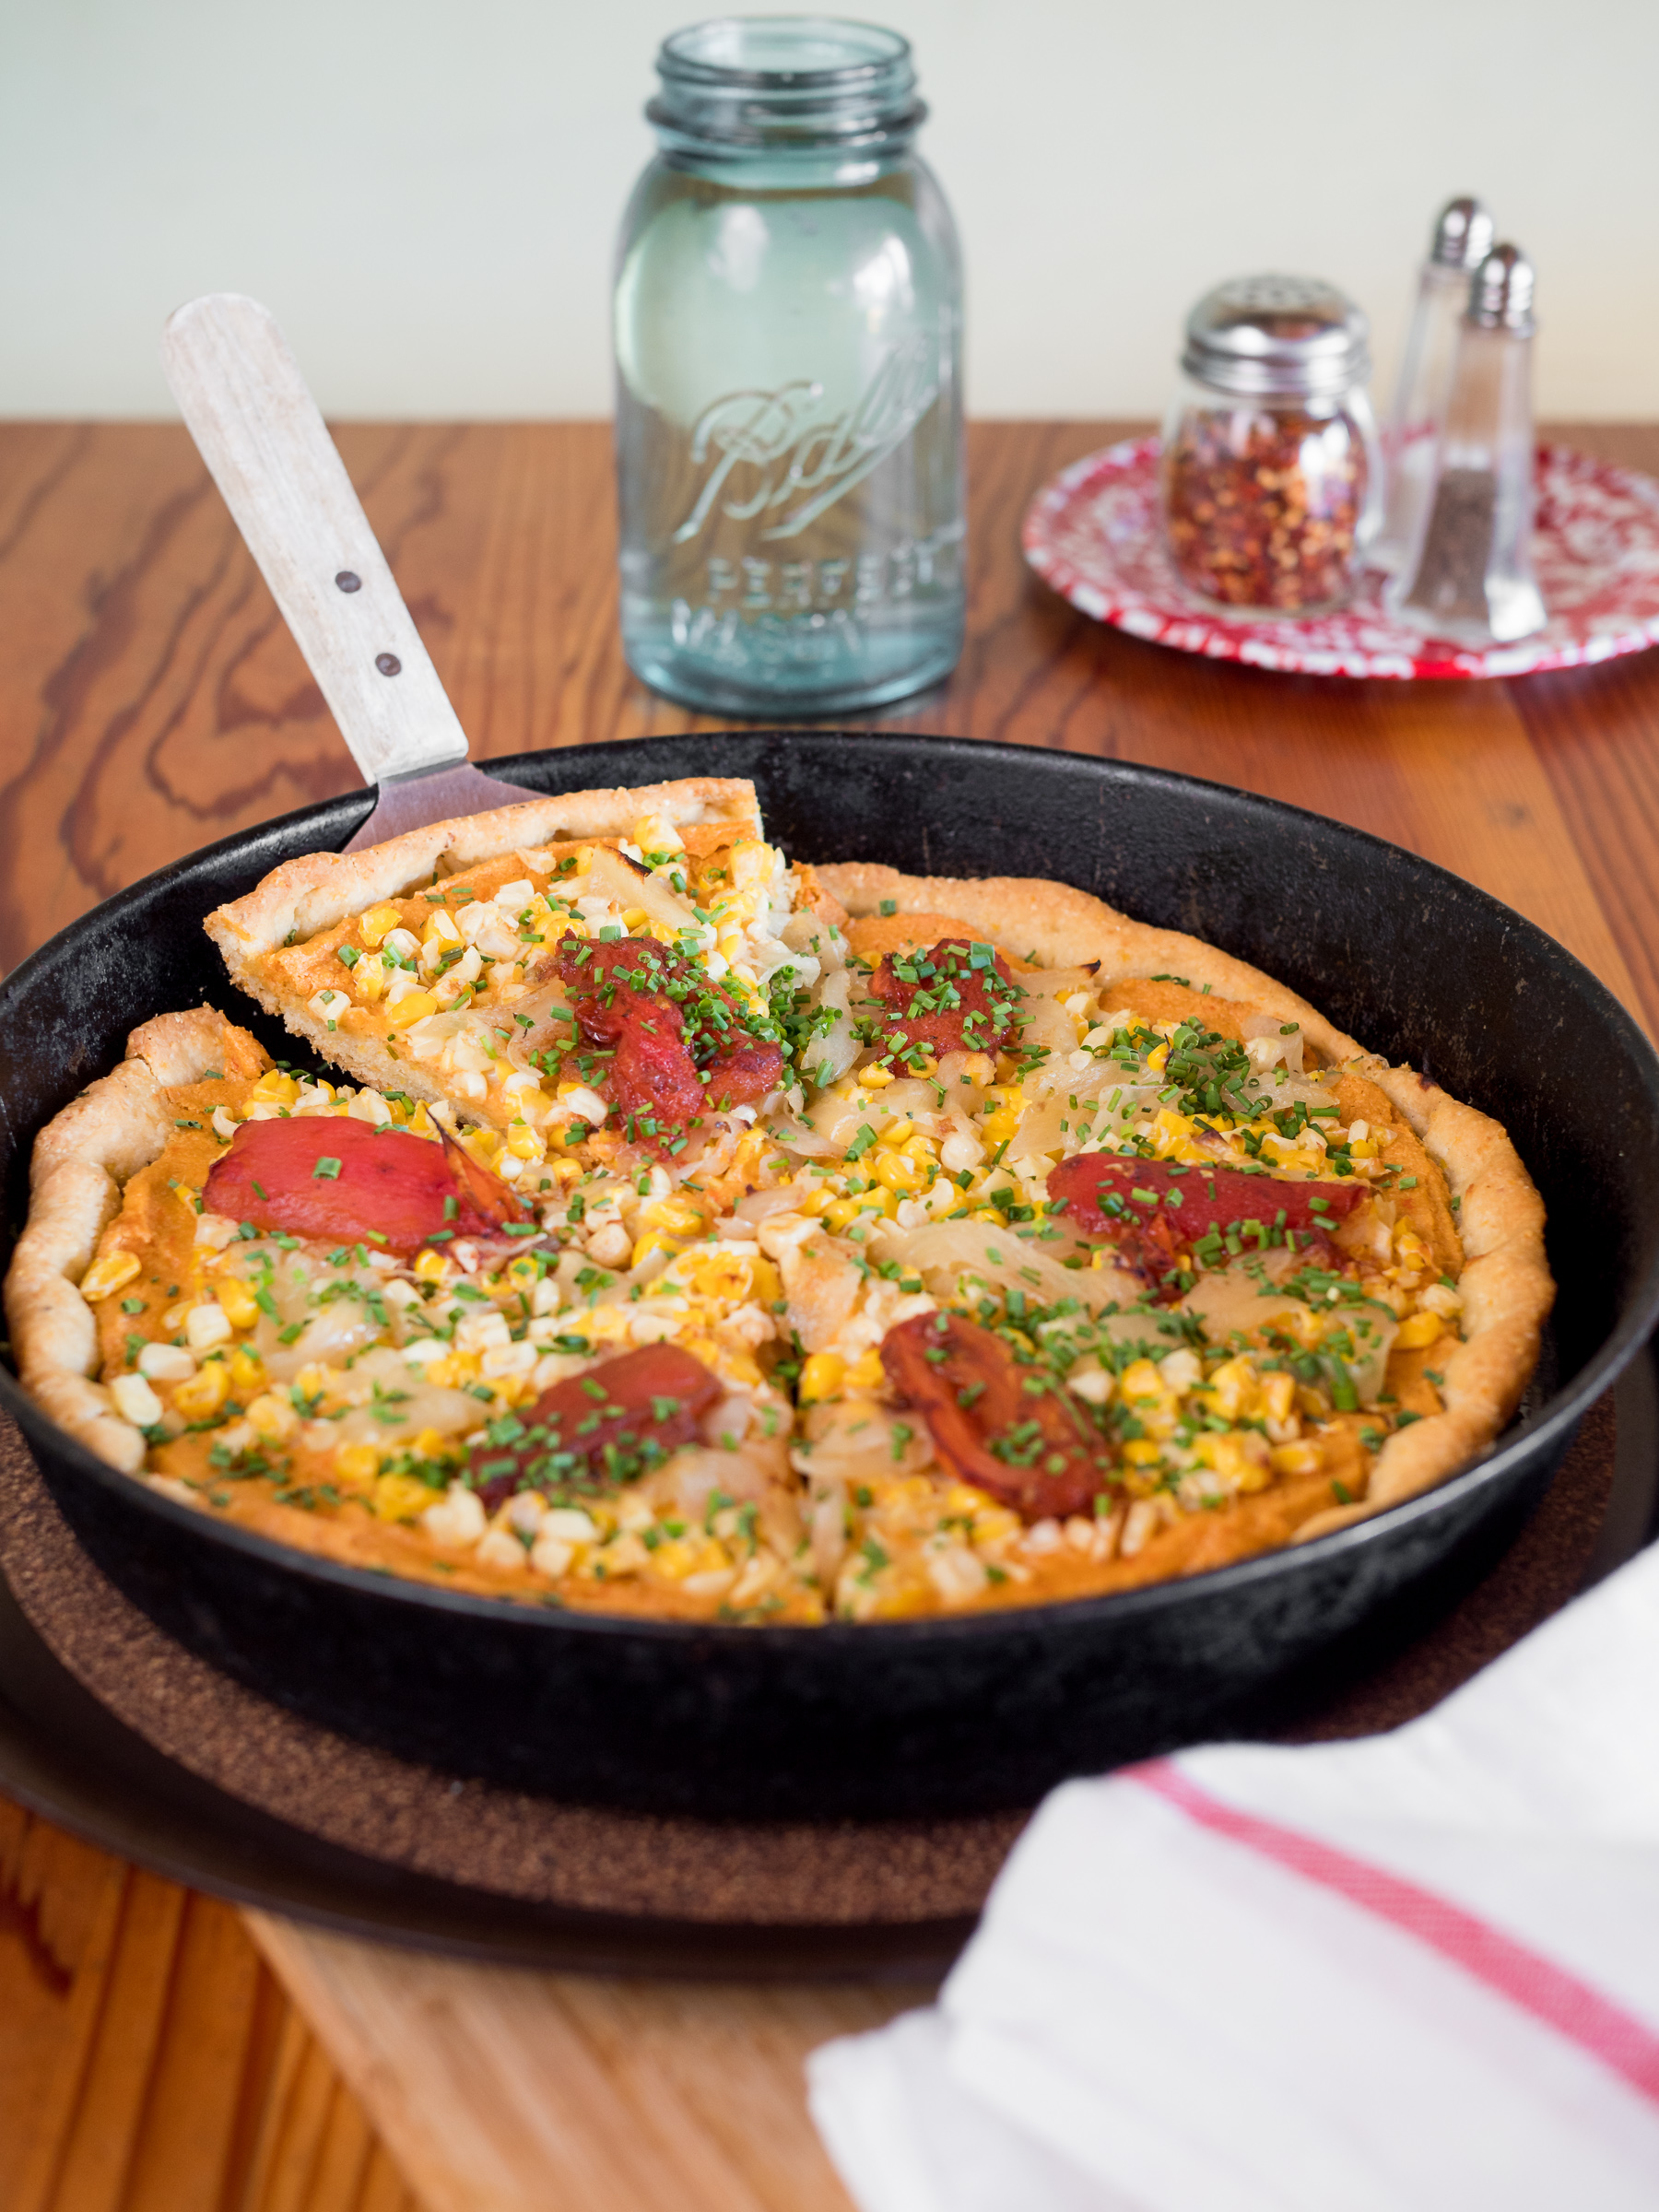 fare photo portland oregon food photographer photography jeremy pawlowski texas austin amarillo pizza dove vivi vegan